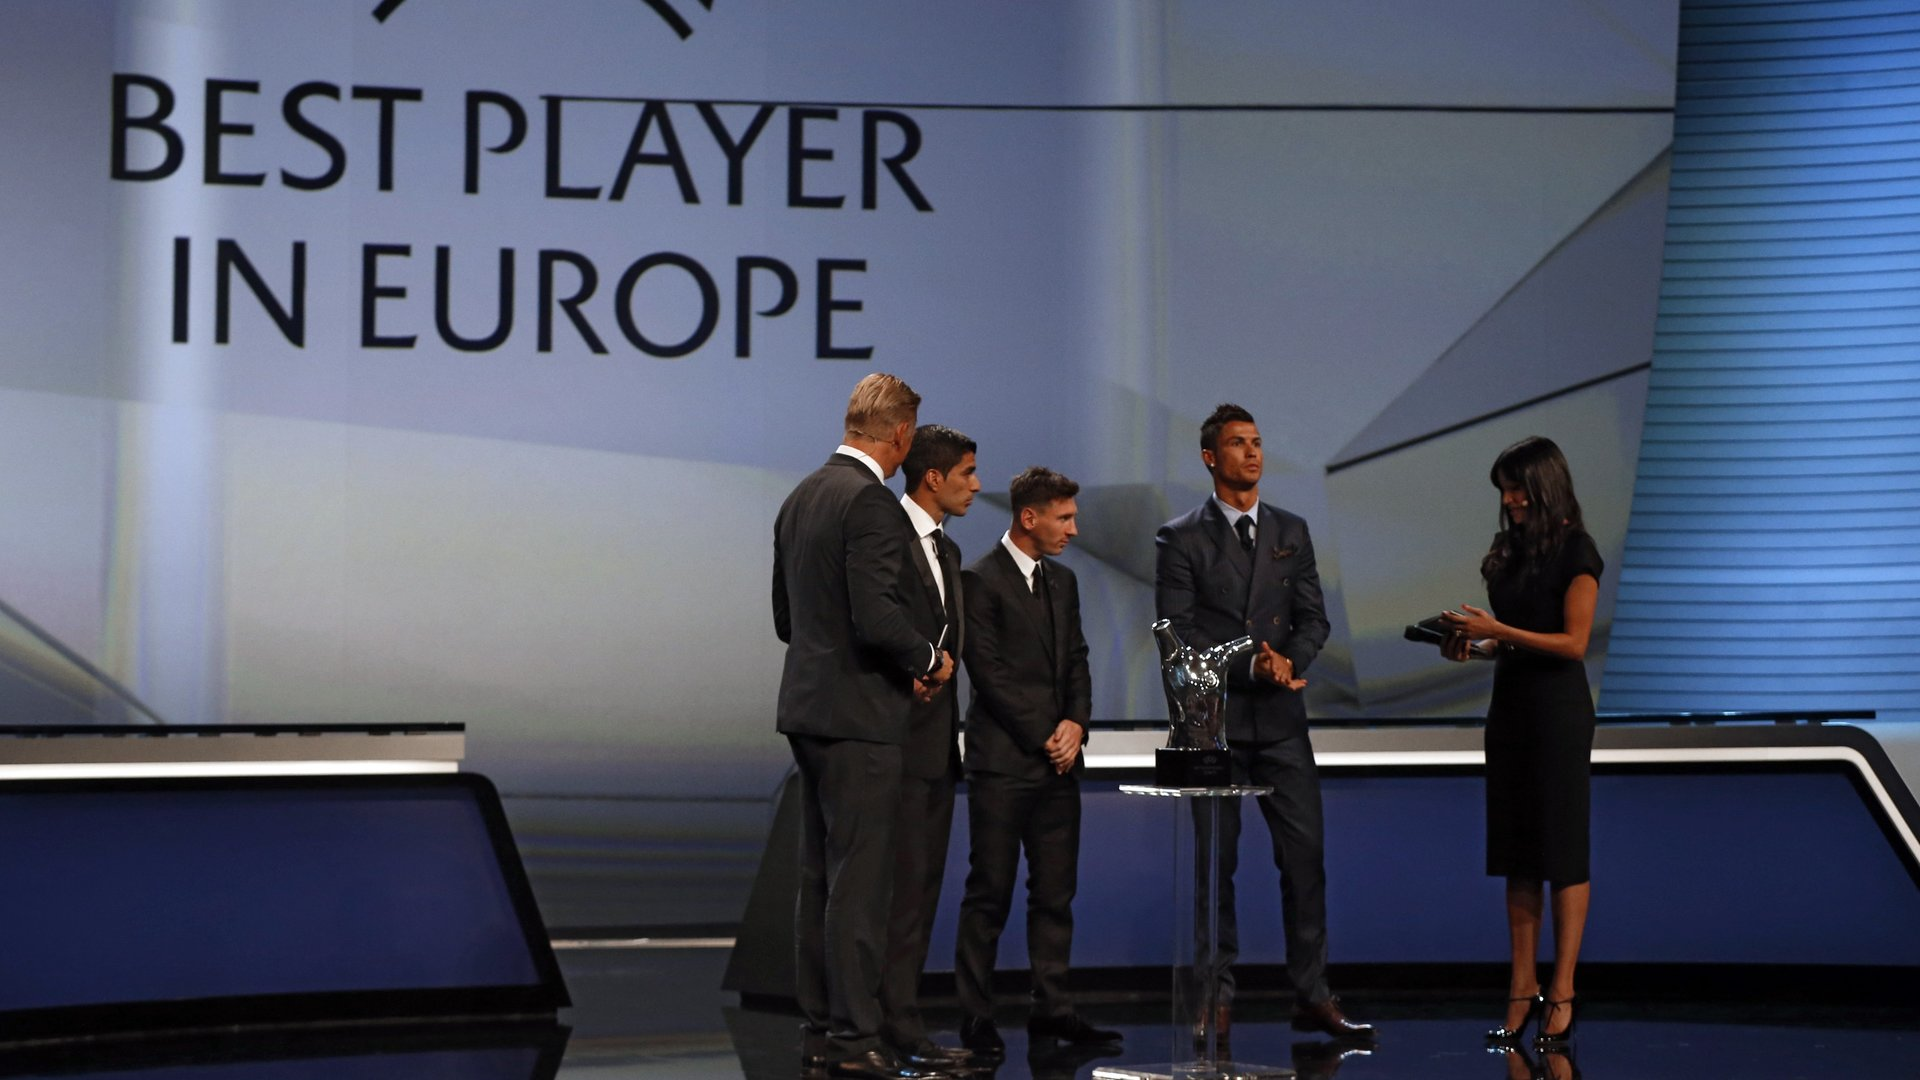 FC Barcelone Argentinian striker Lionel Messi (2ndL) his Urugayan teammate Luis Suarez (2ndL) and Real Madrid's Portuguese striker Cristiano Ronaldo (2ndR)  take part in the awarding ceremony for the Best Men's player in Europe at the end of the UEFA Champions League Group stage draw ceremony, on August 27, 2015 in Monaco. AFP PHOTO / VALERY HACHE        (Photo credit should read VALERY HACHE/AFP/Getty Images)